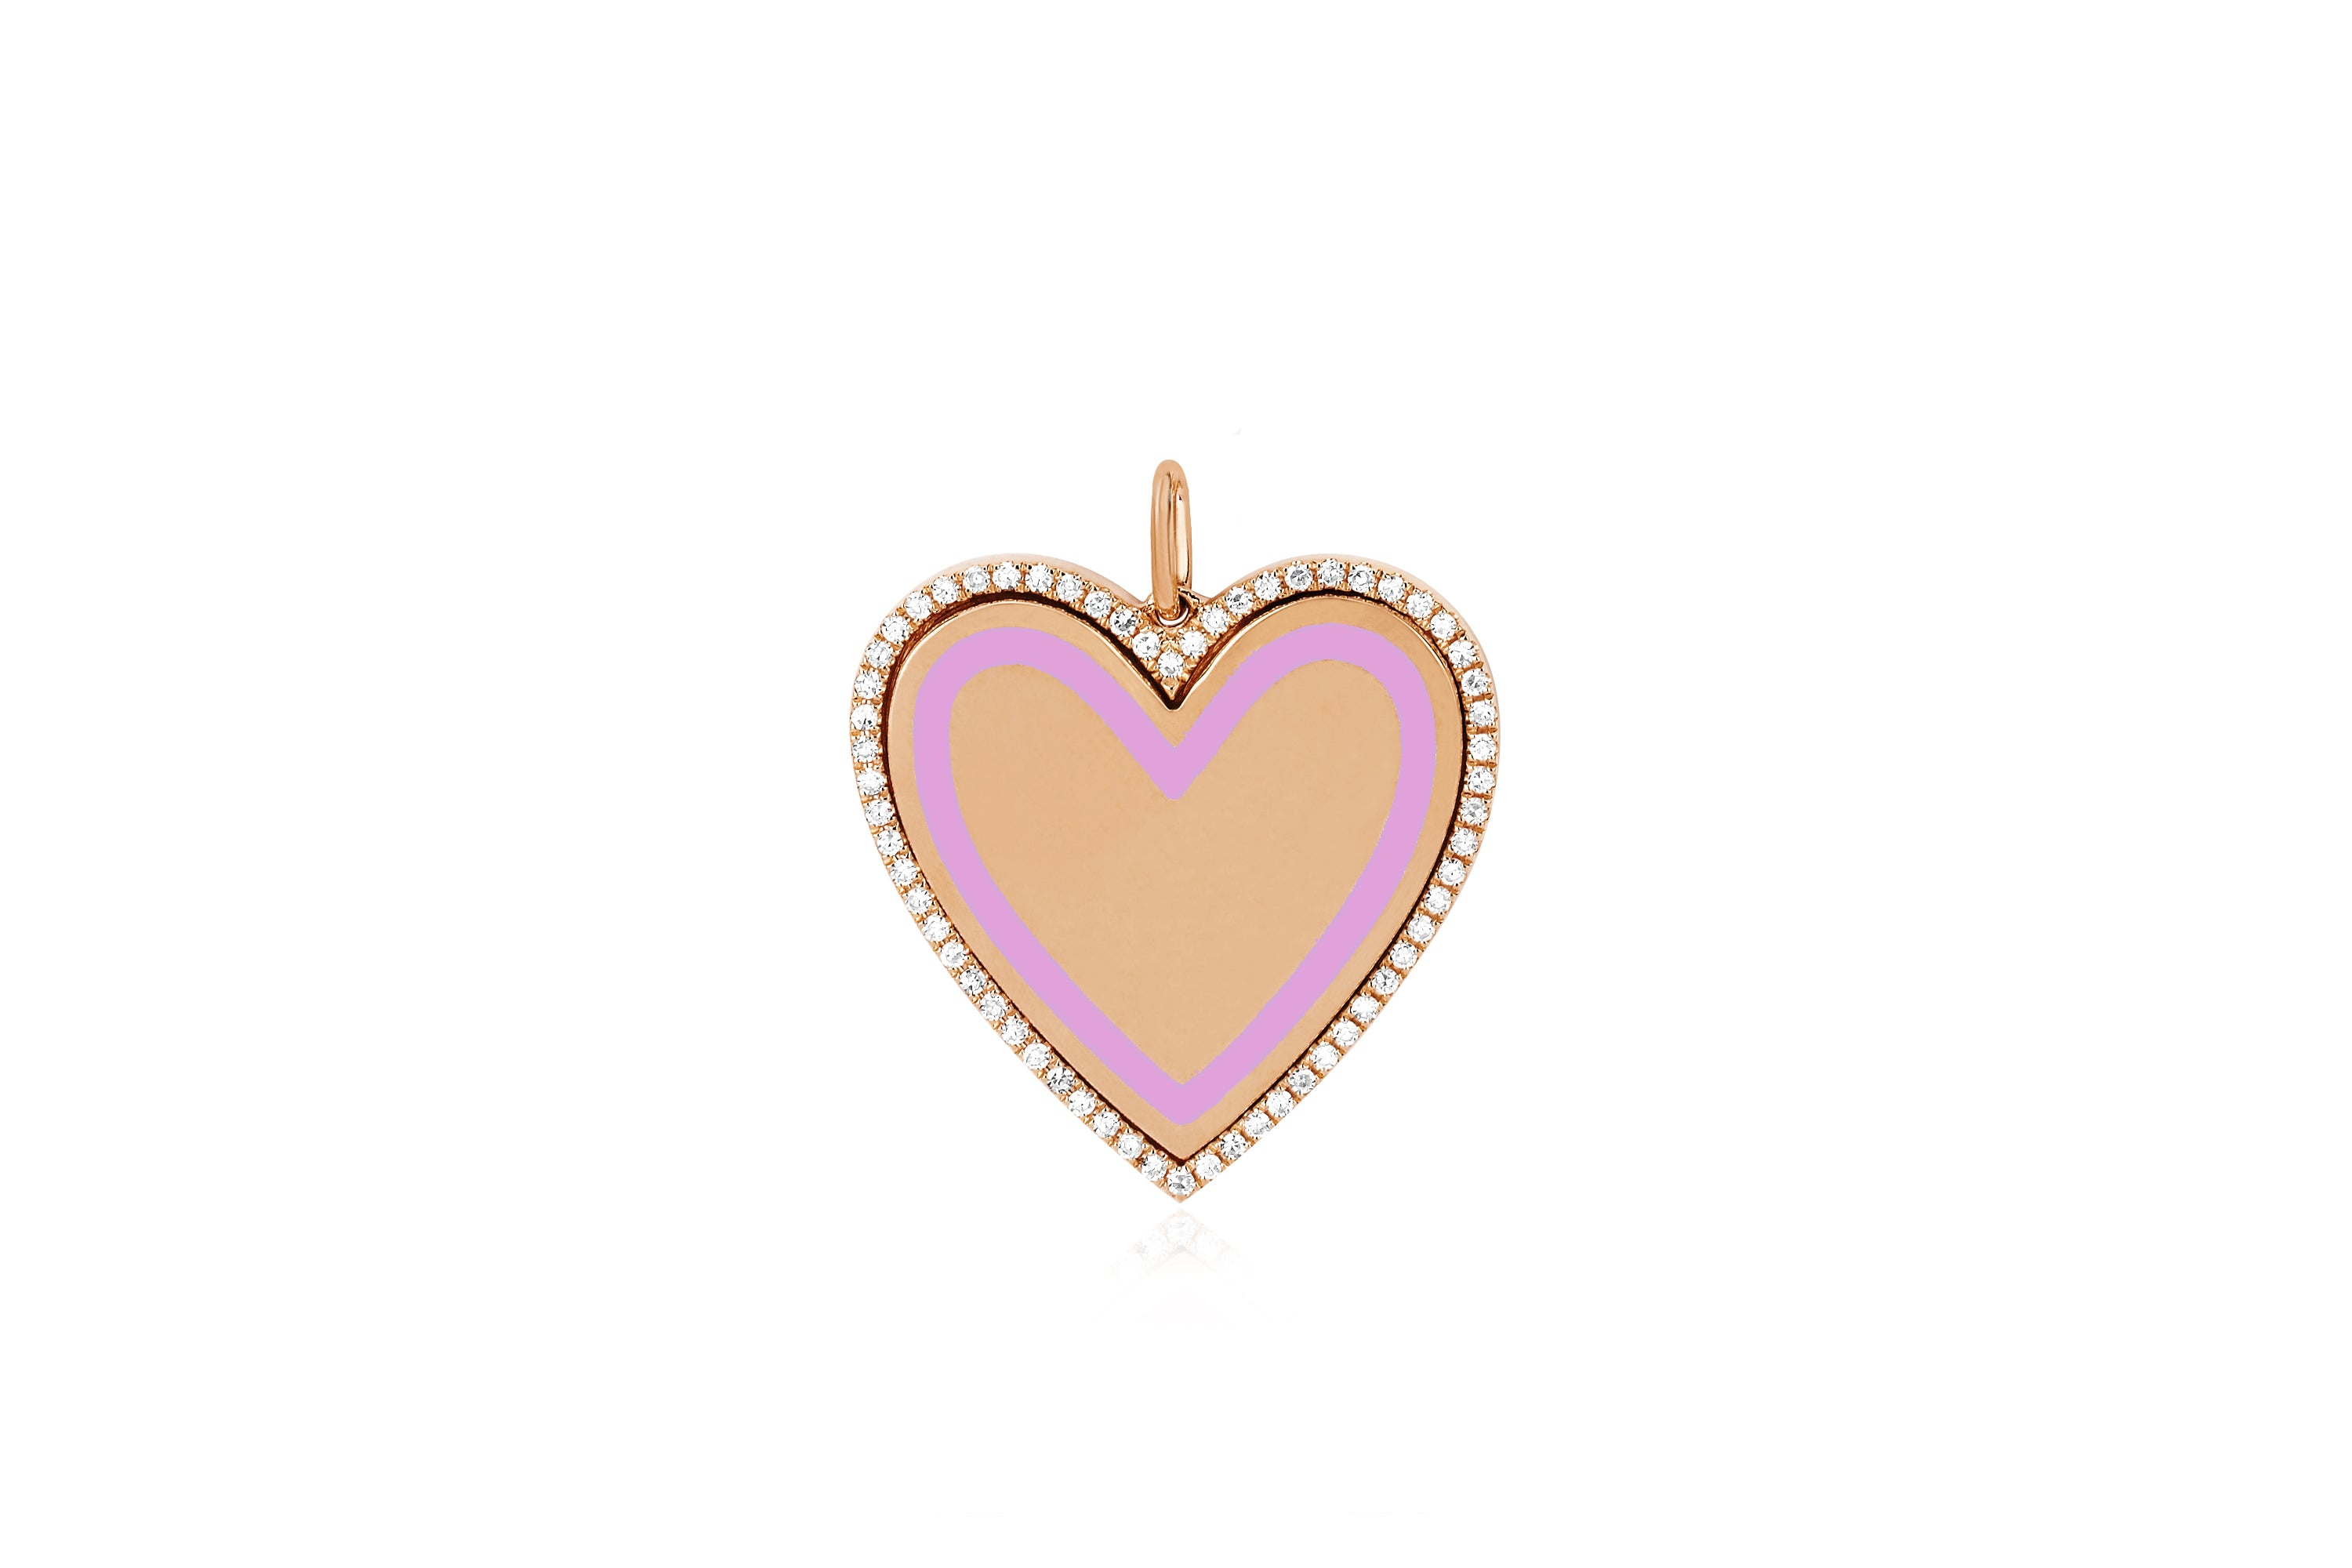 Diamond & Enamel Heart Necklace Charm